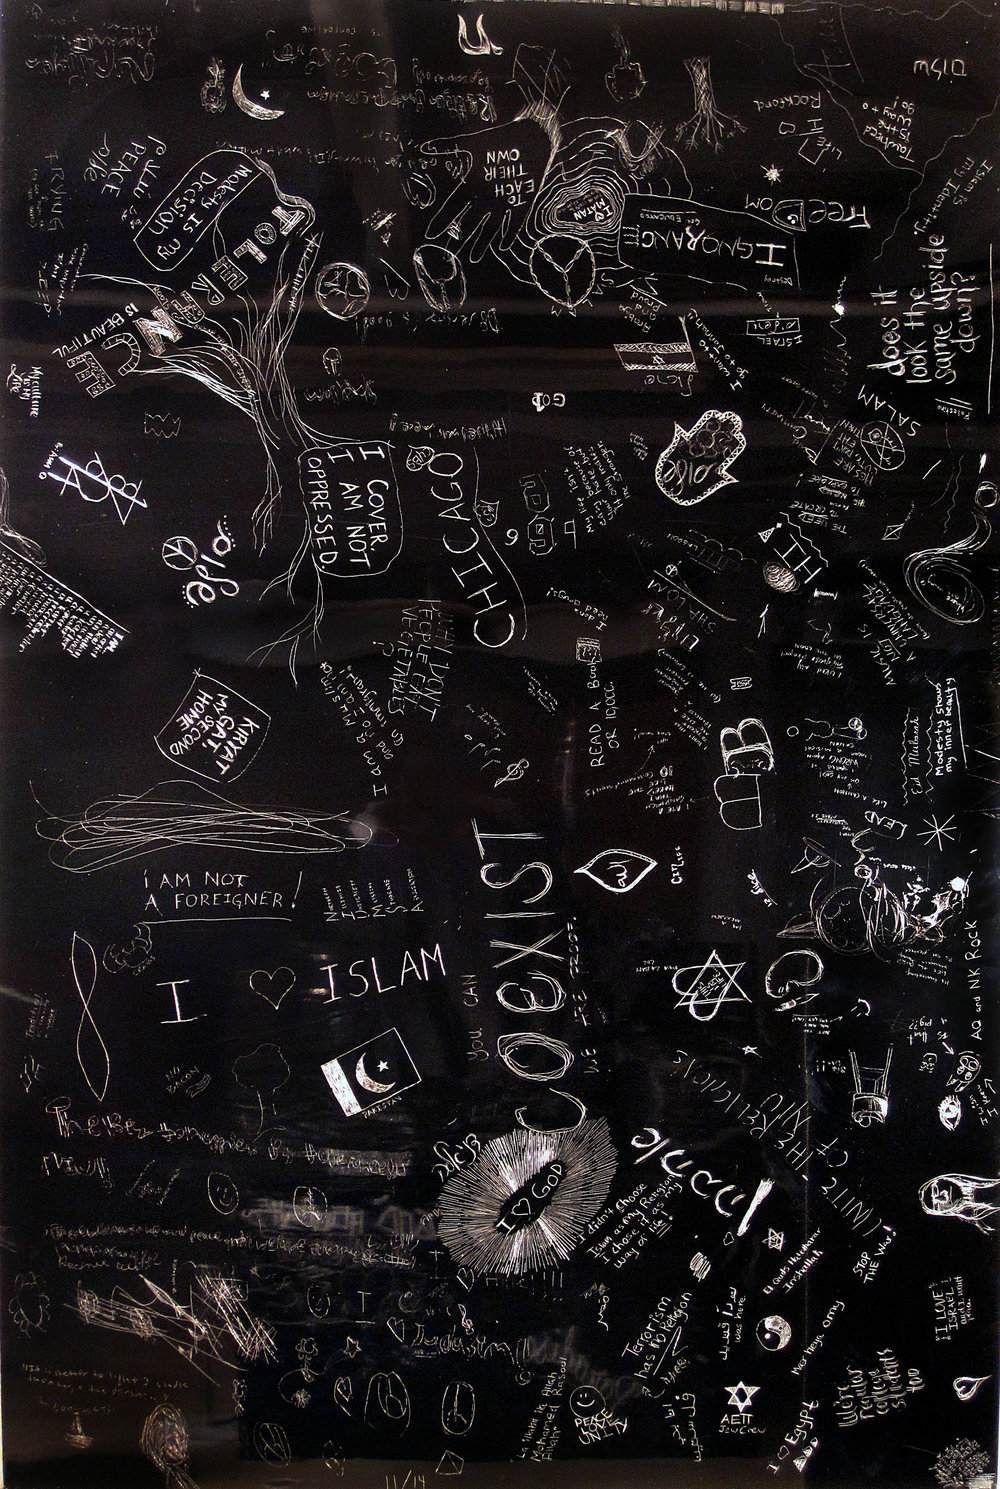 Faith, Crowd sourced collaborative drawing at NIU School of Art and Design, Incised aluminum with baked enamel finish, 60 X 48 inches, 2010